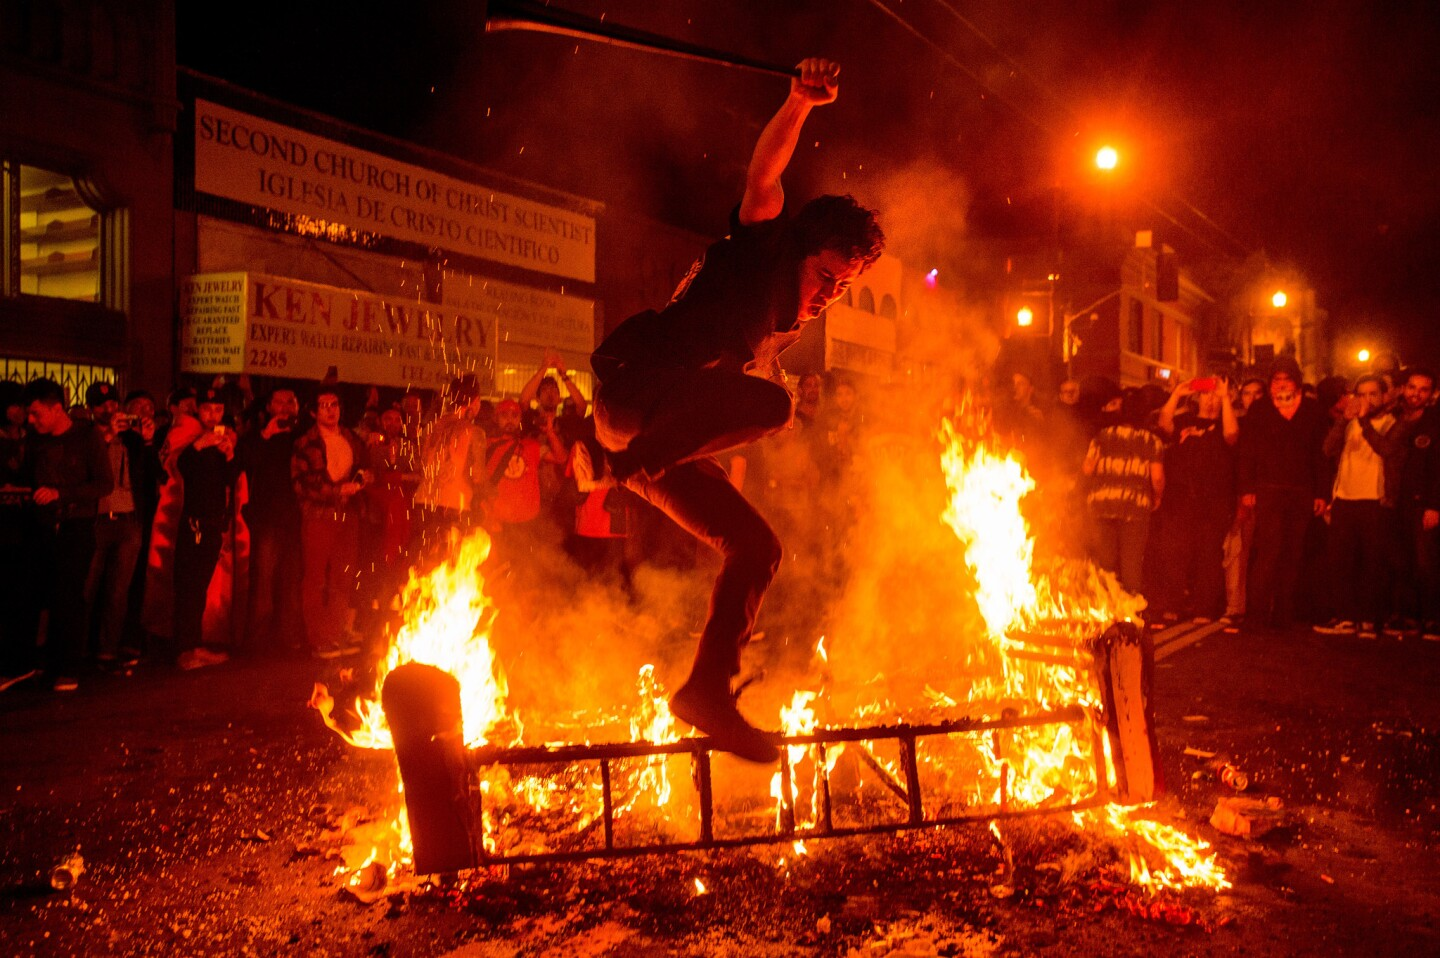 Violence erupts in San Francisco after 2014 World Series win